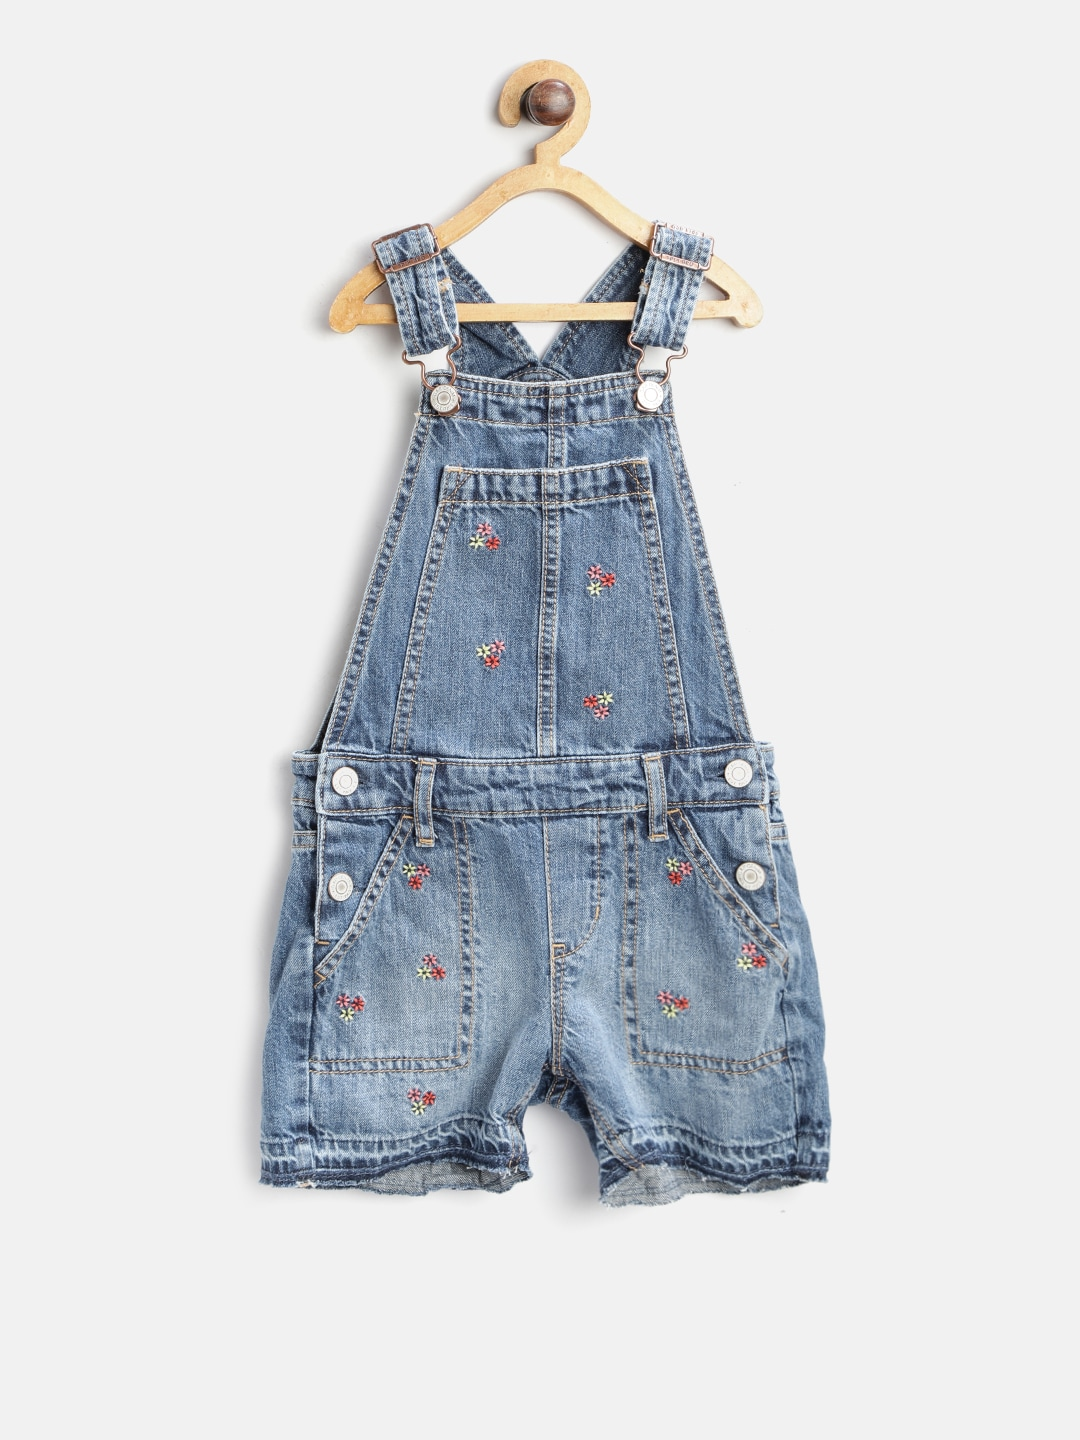 3a443365e74 Dungarees - Buy Dungarees Dress for Women Online - Myntra